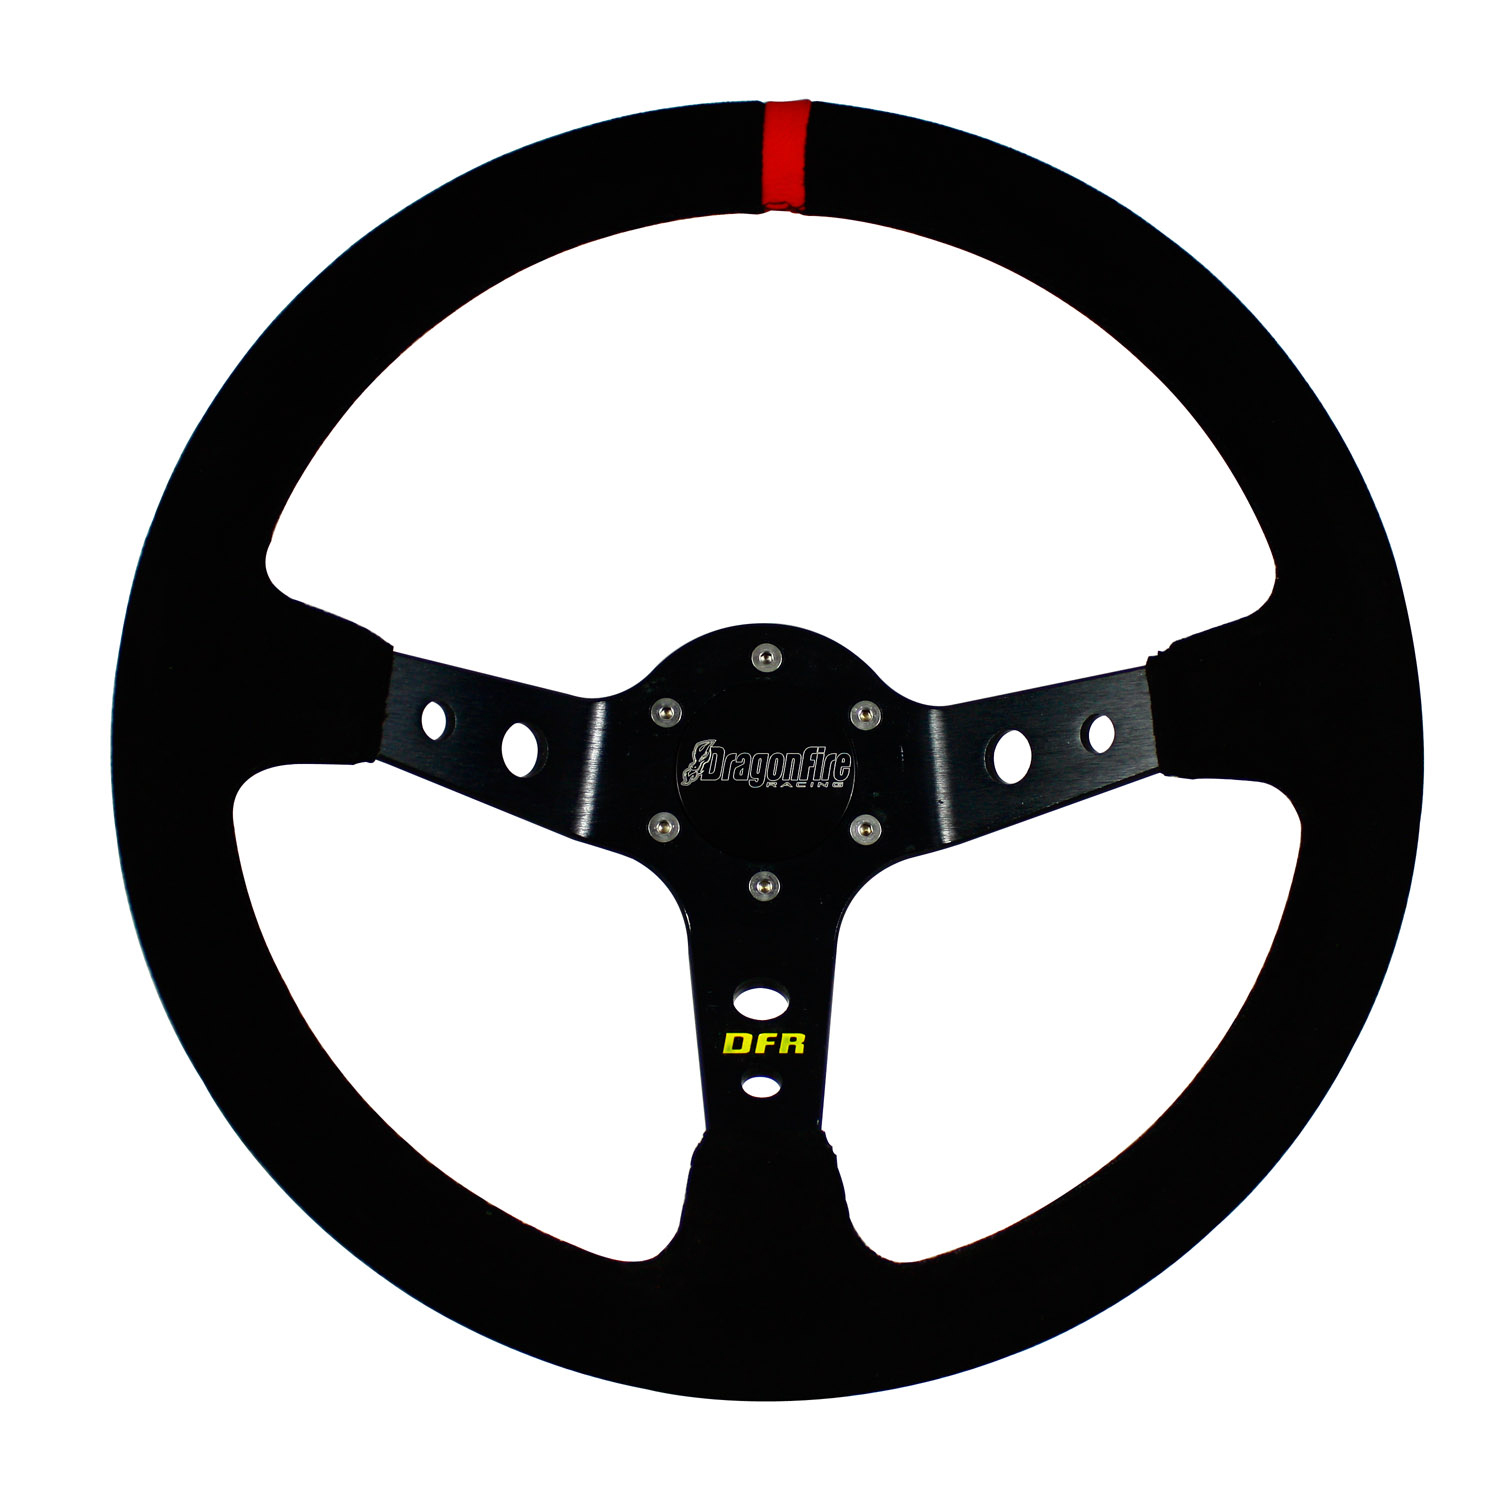 Racing wheel clipart png black and white download Nascar Racing Wheel Clipart   Clipart Panda - Free Clipart ... png black and white download